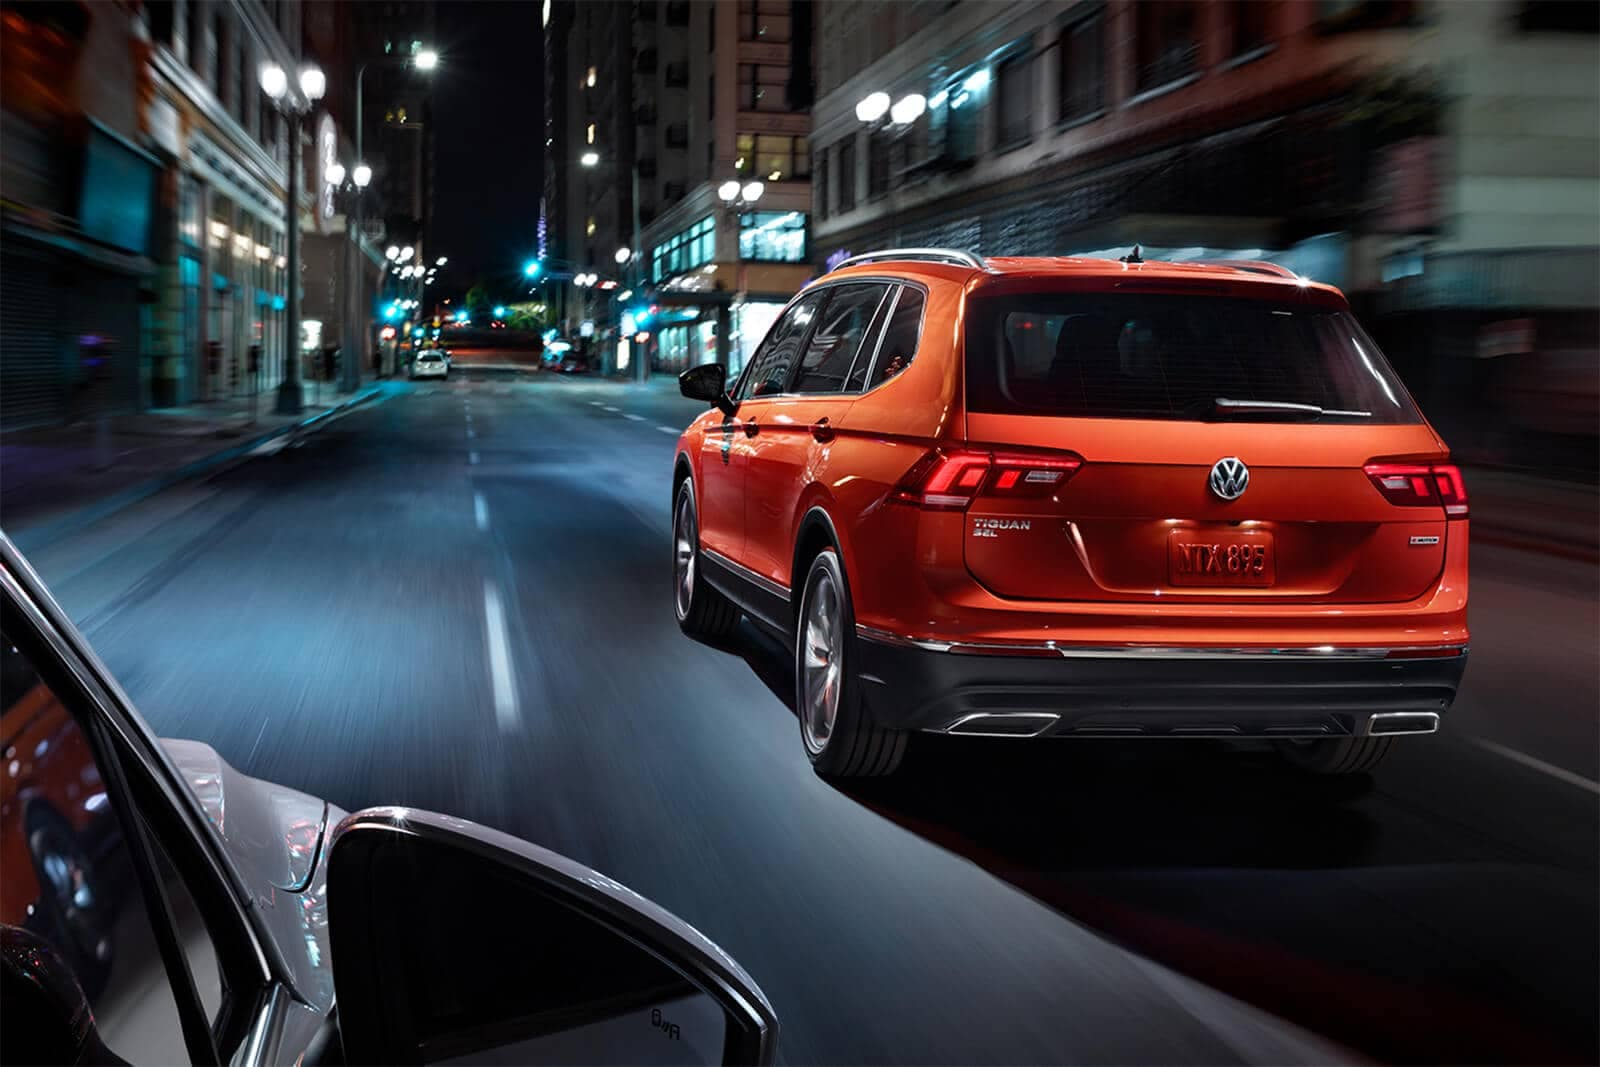 2019 Volkswagen Tiguan driving at night